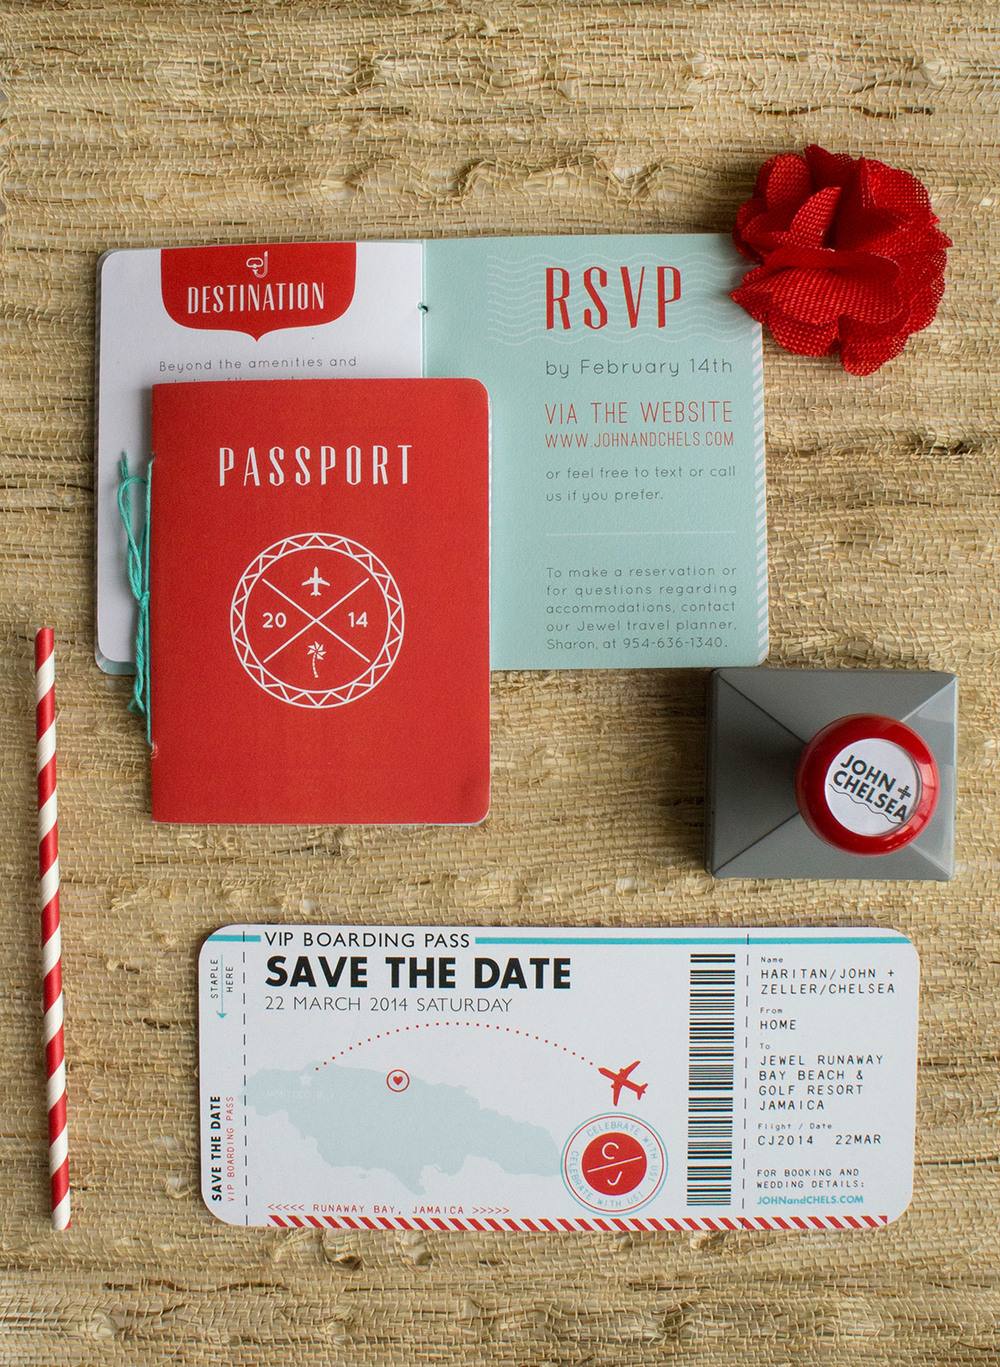 HD wallpapers b t elements wedding invitations 181design.gq